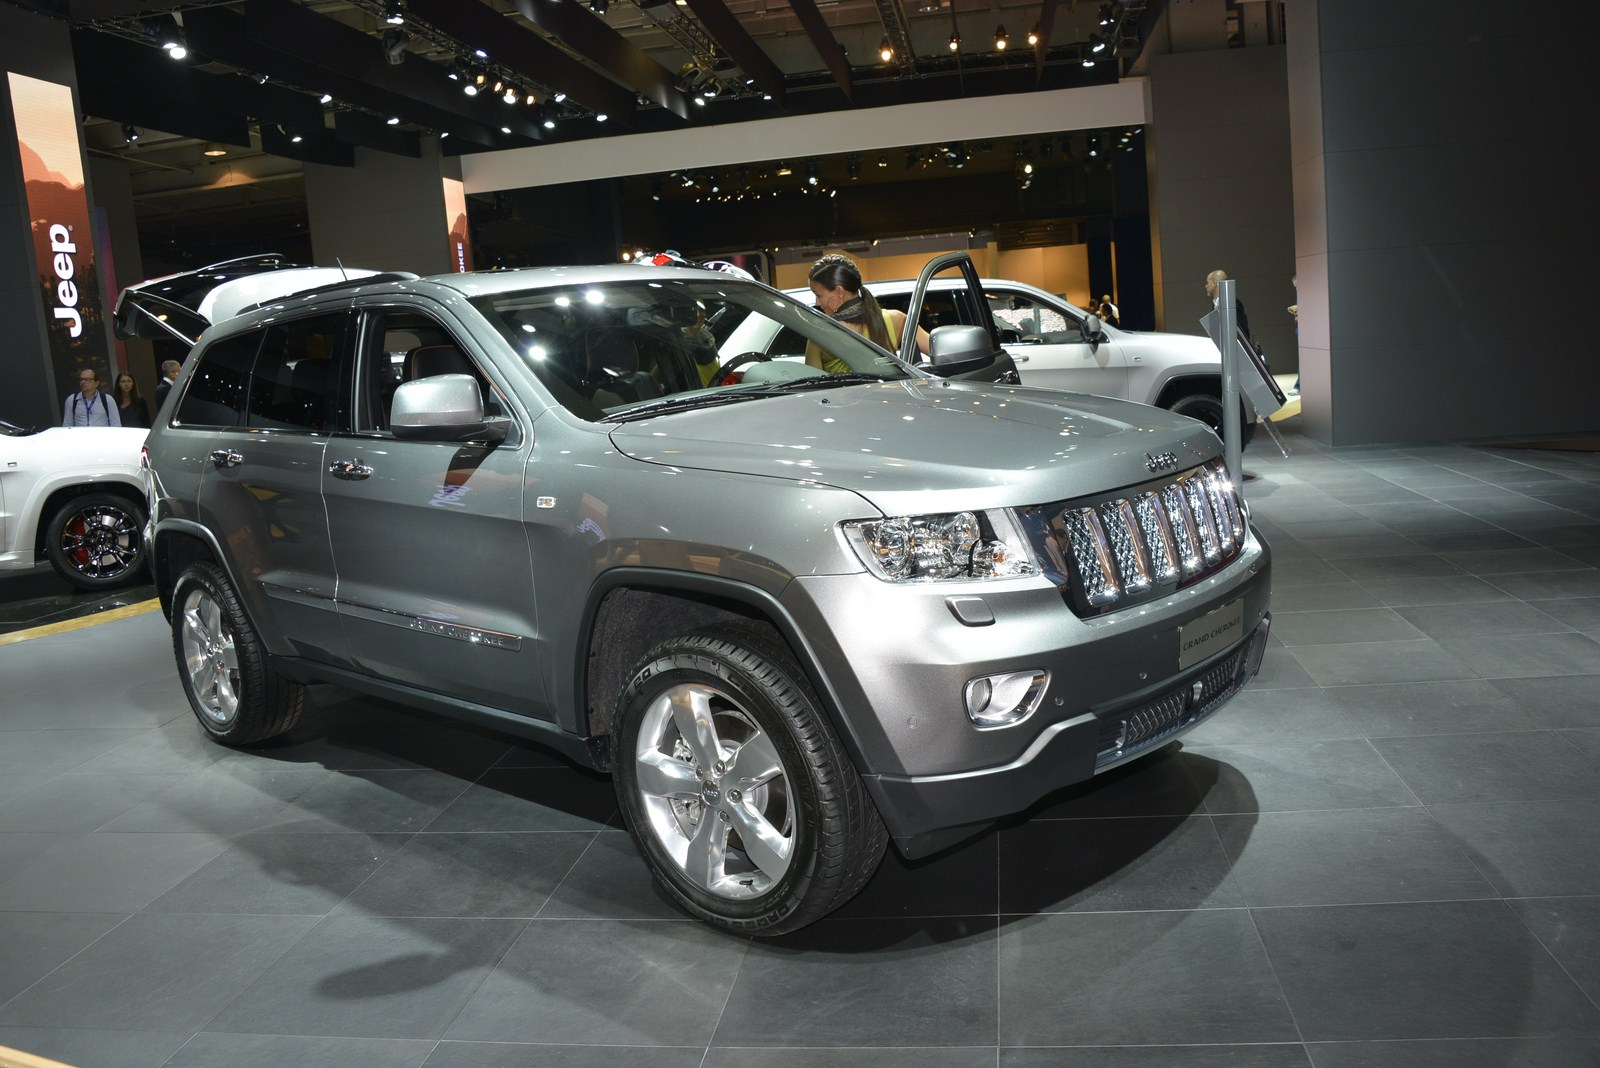 jeep stand in paris 2012 28 sep 2012 13 40 320k. Cars Review. Best American Auto & Cars Review